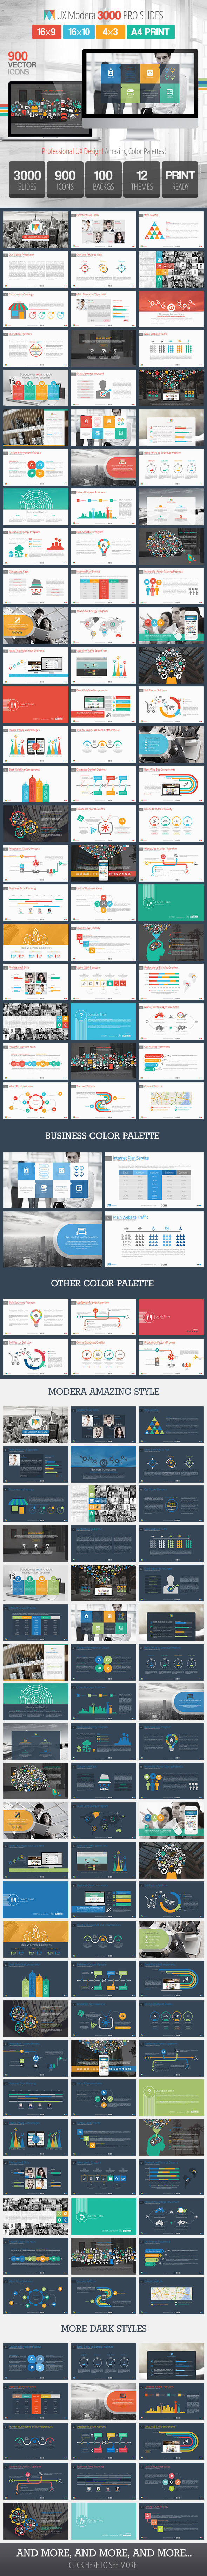 GraphicRiver UX Modera Presentation Template for Keynote 9319493